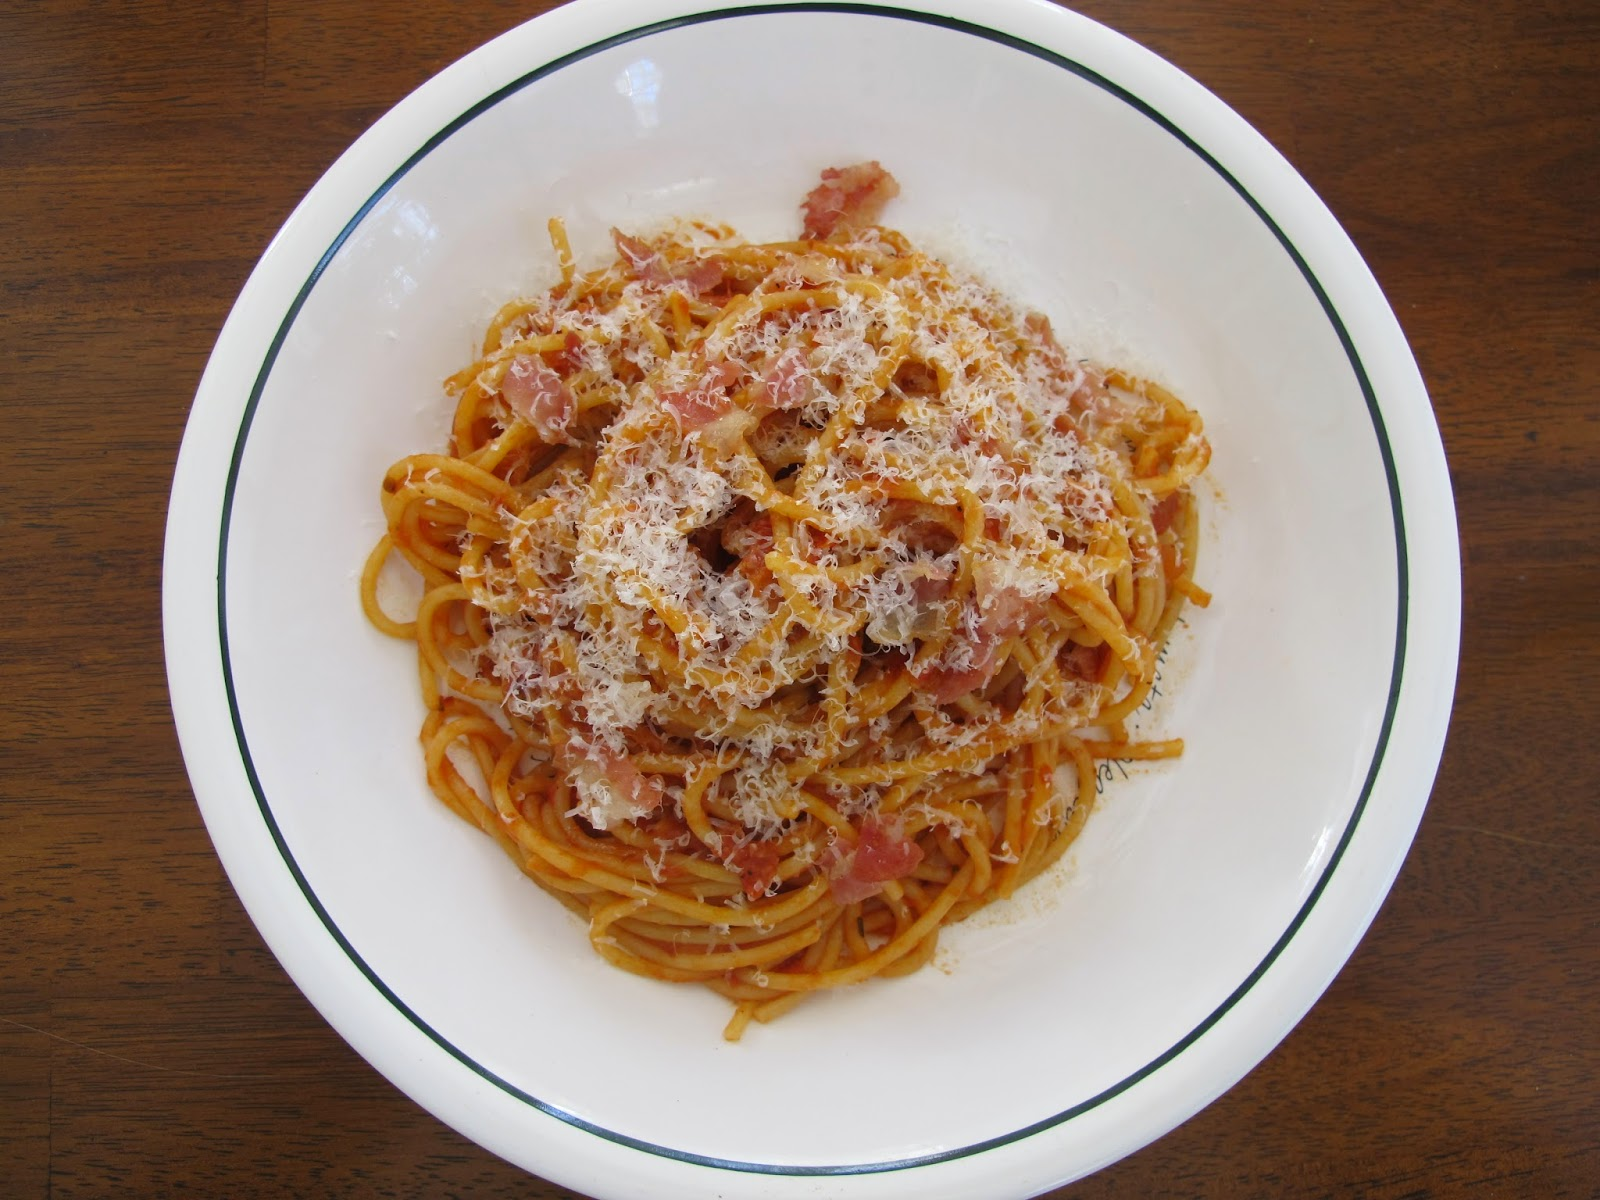 Bucatini with Tomato, Guanciale, and Chile